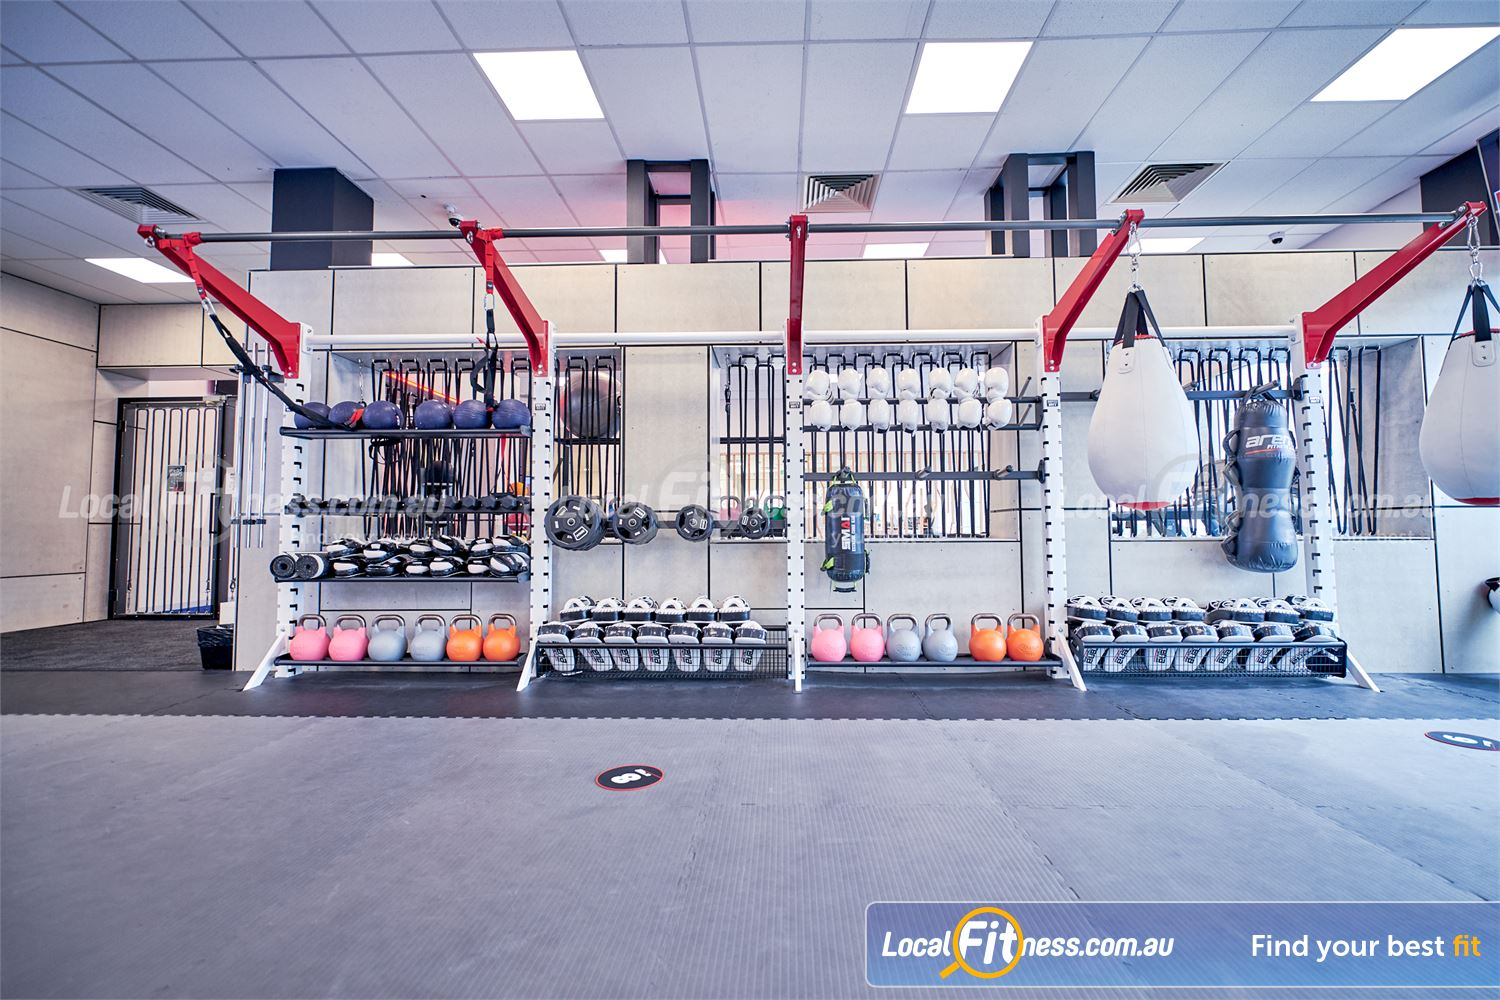 Goodlife Health Clubs Knox City Near Wantirna Coach-led HIIT and functional training classes in Wantirna South.